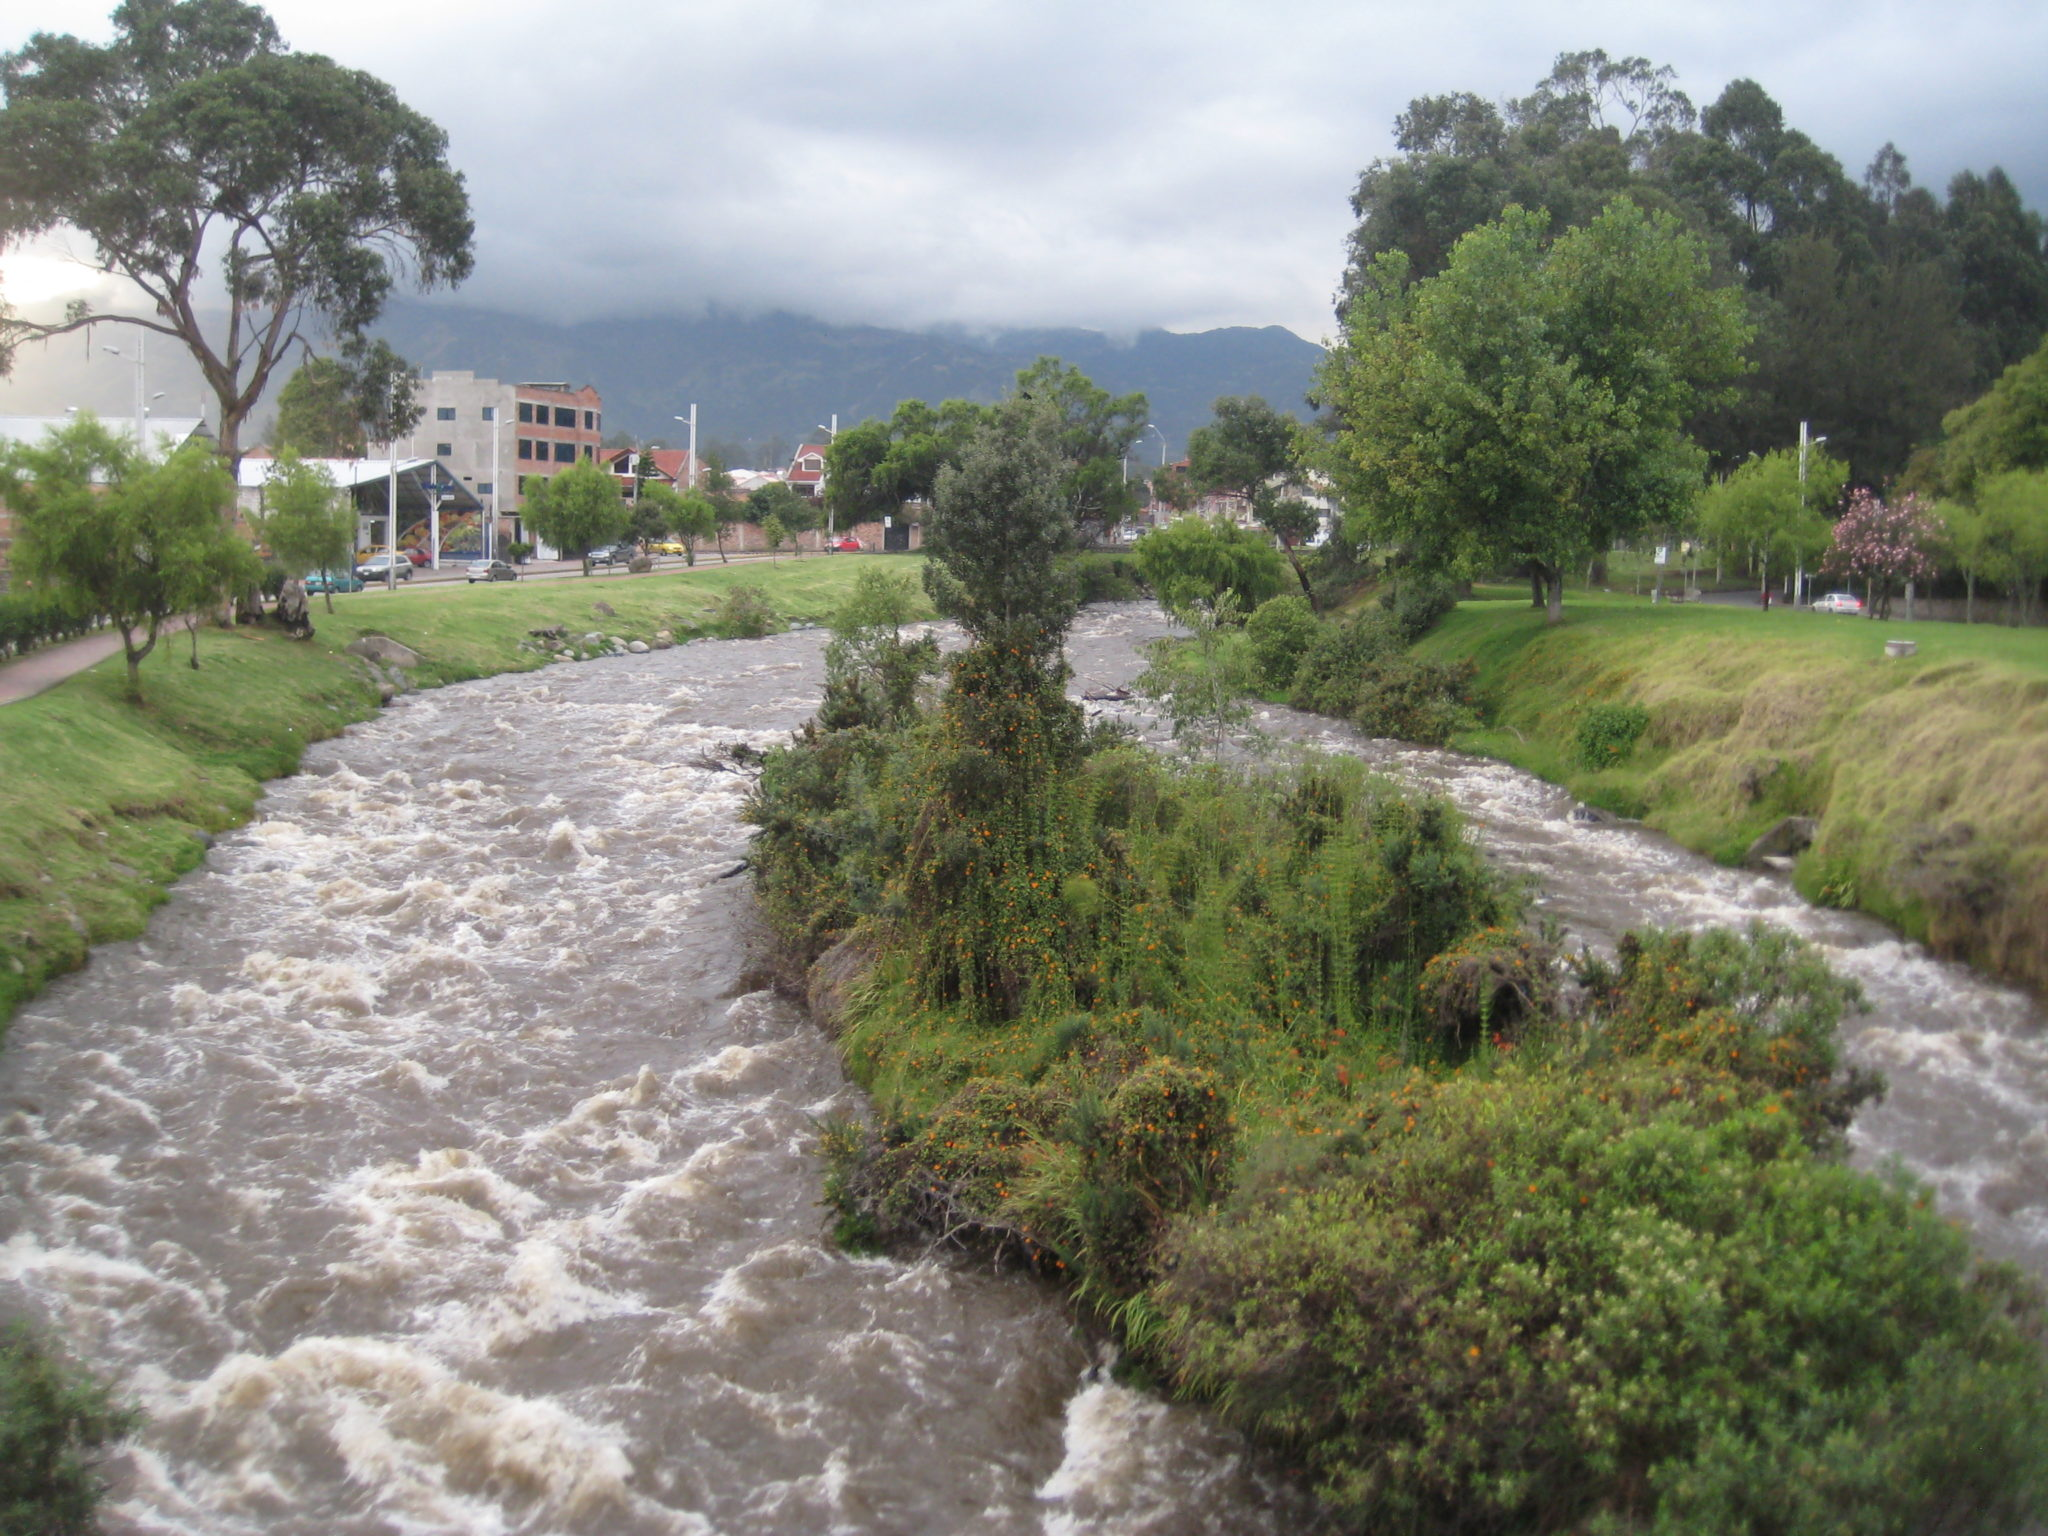 The Tomebamba River in Cuenca.